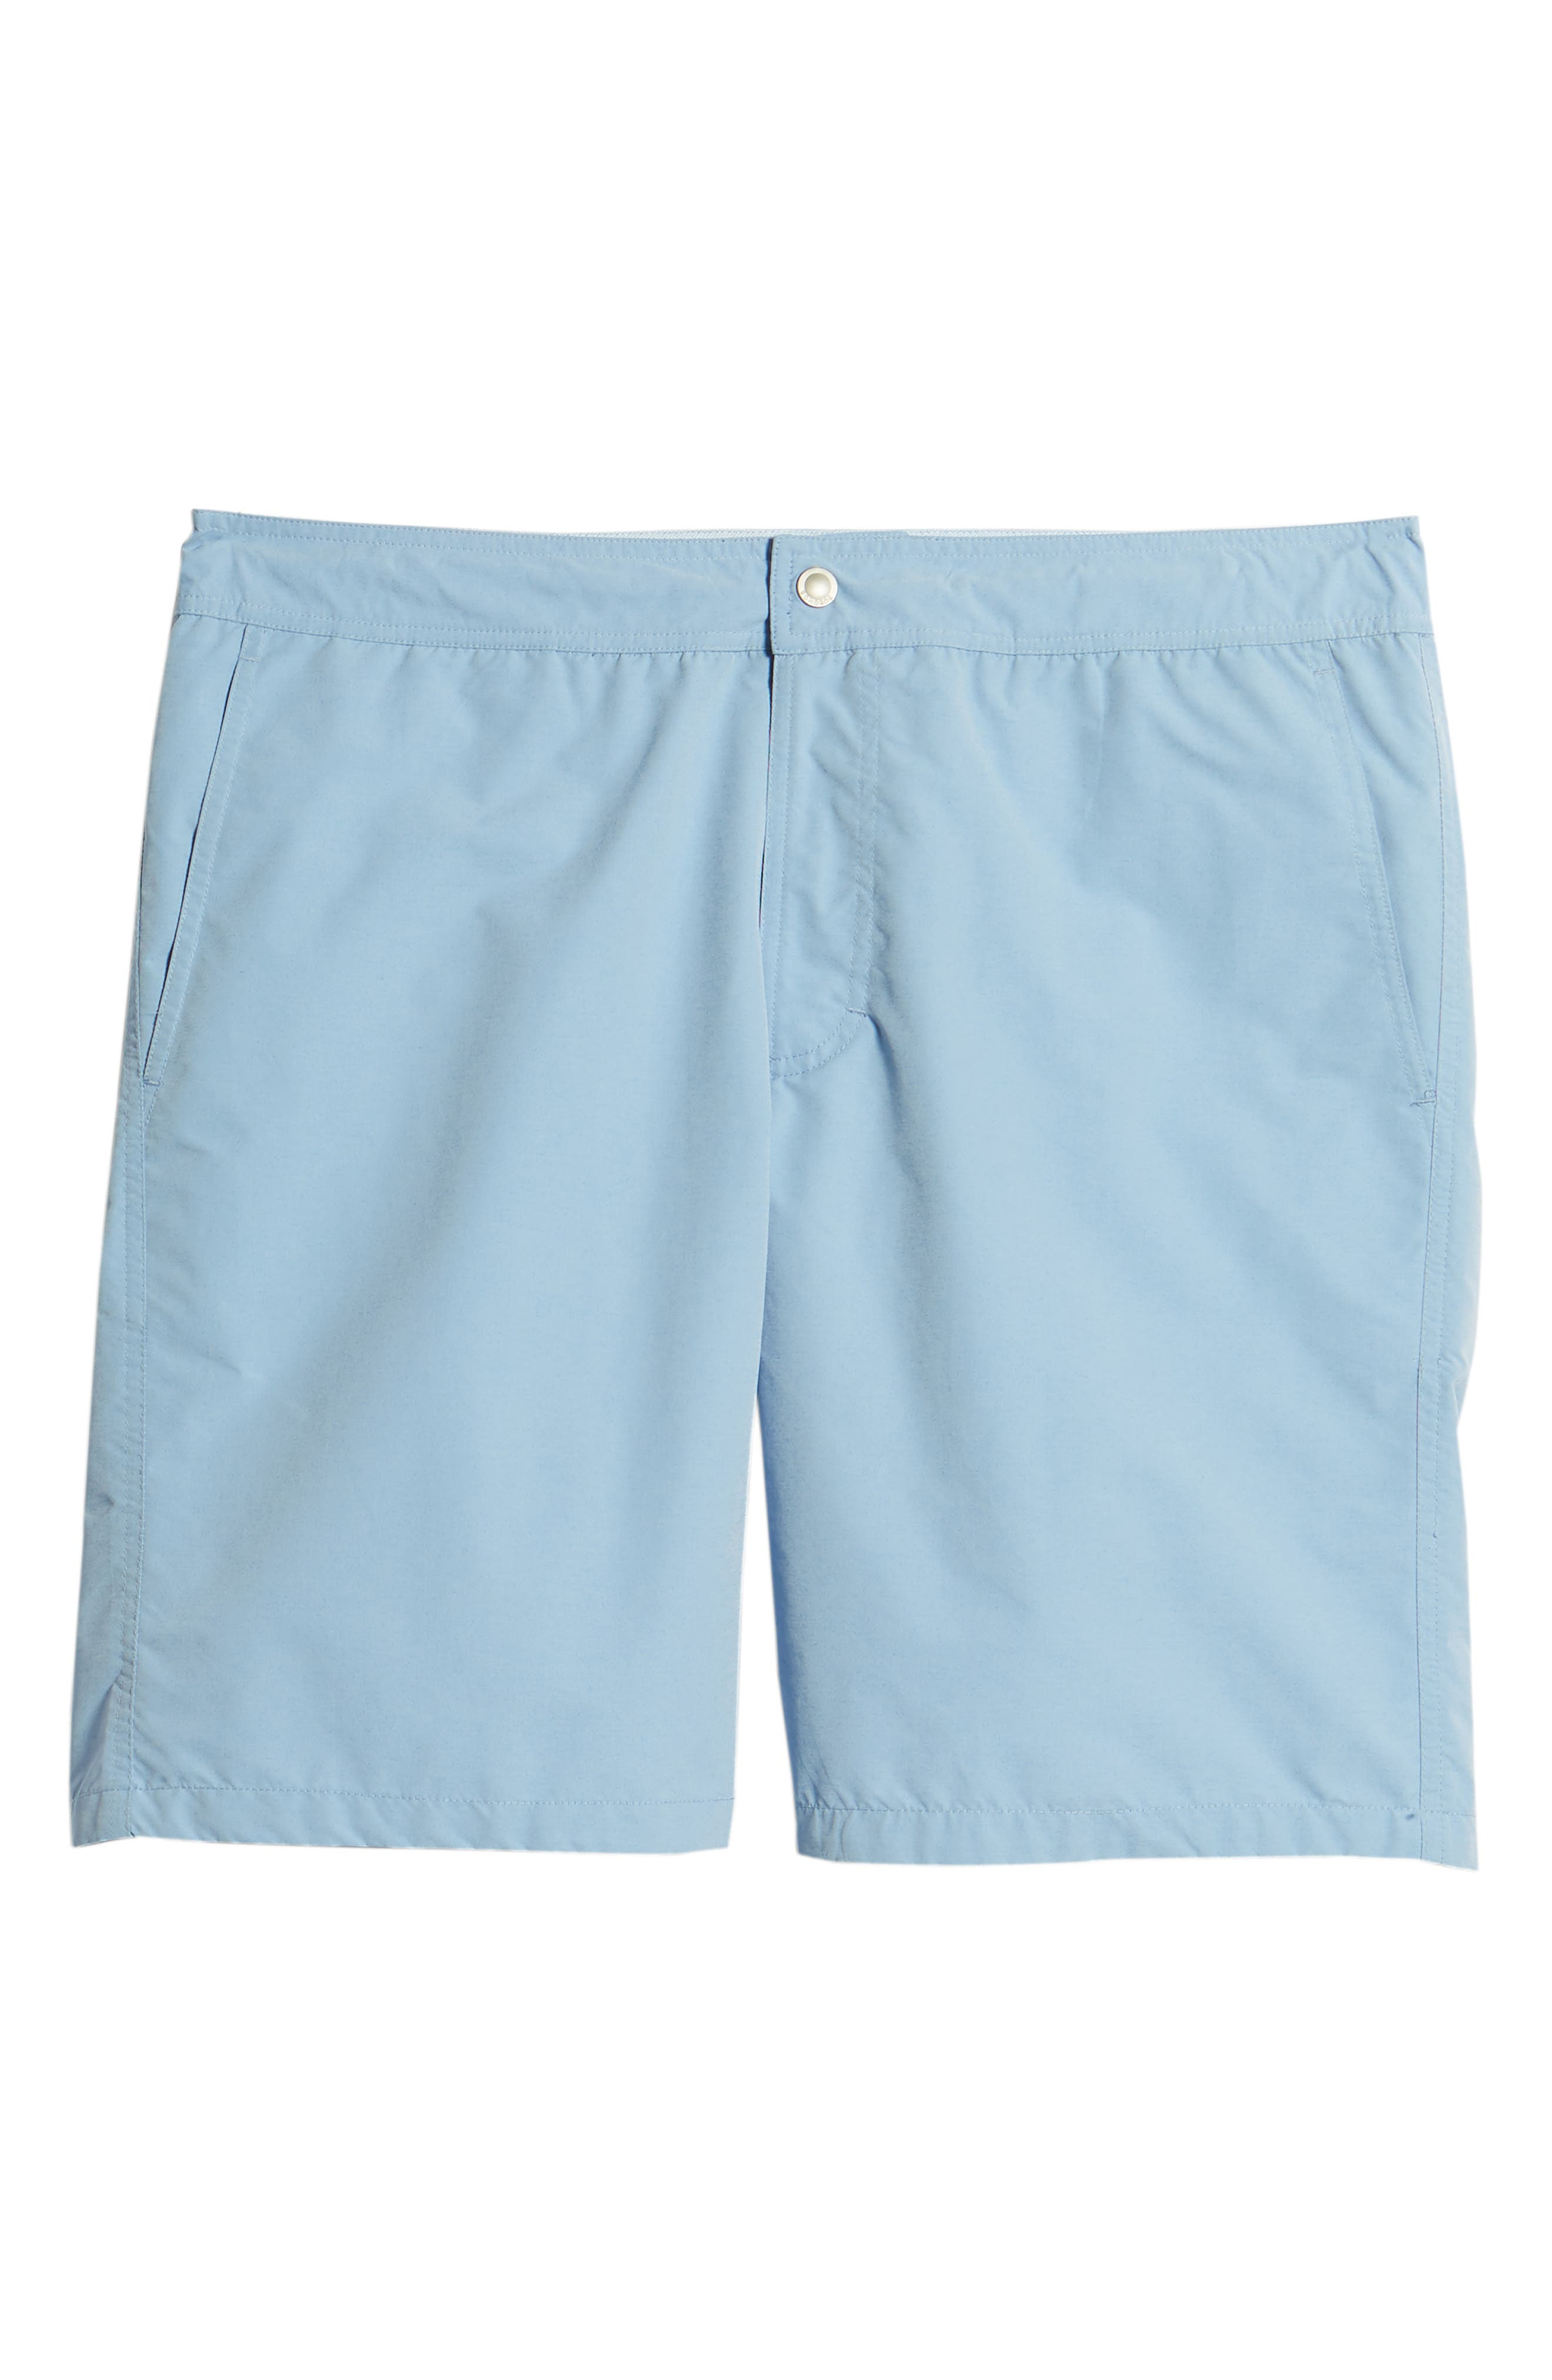 Banzai 9-Inch Swim Trunks,                             Alternate thumbnail 6, color,